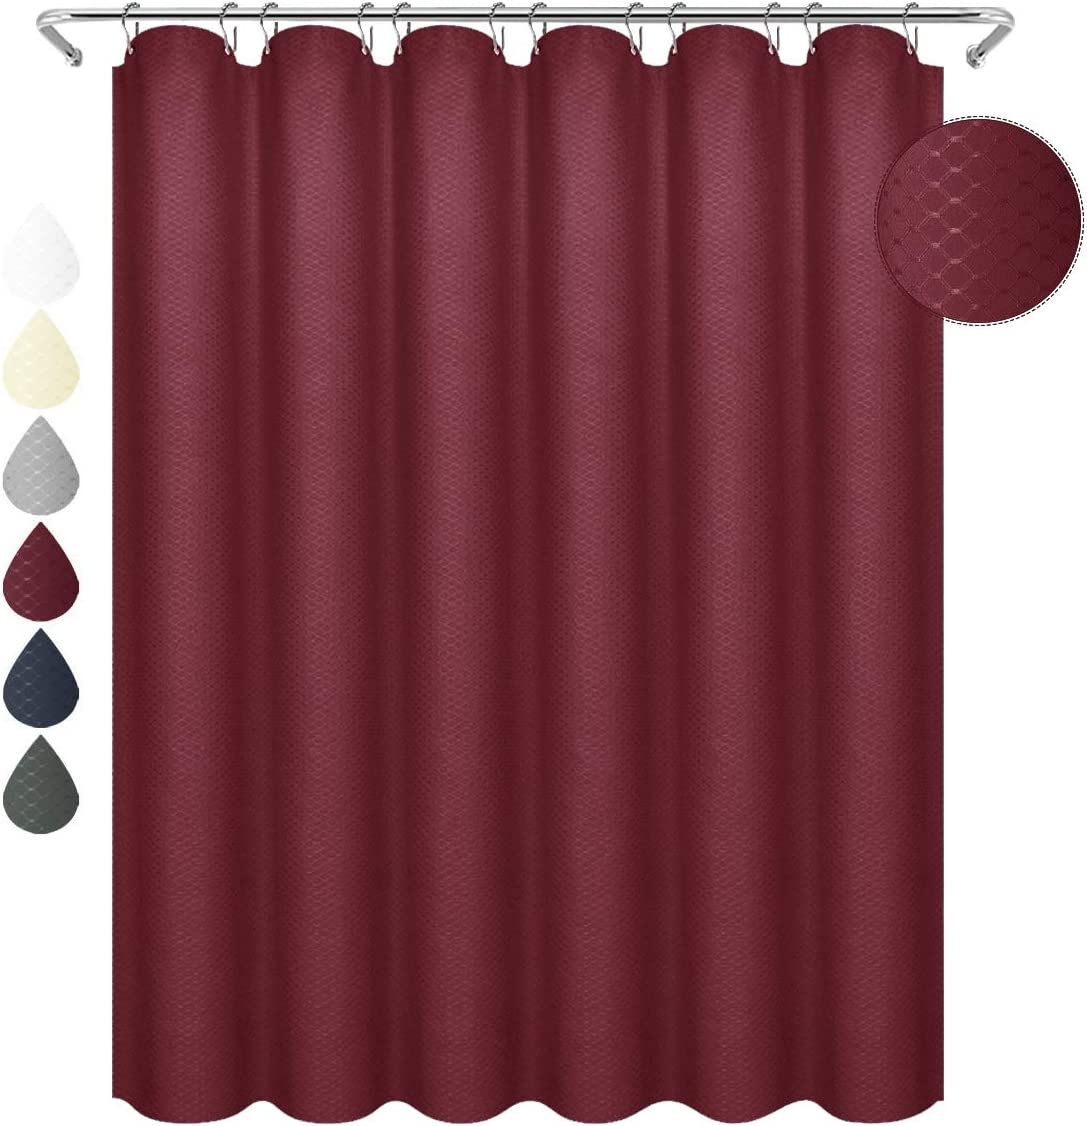 "Water Repellent 36 X 72/"" Fabric 90G//GSM Shower Curtain Or Liner He BROWN 36Wx72l"